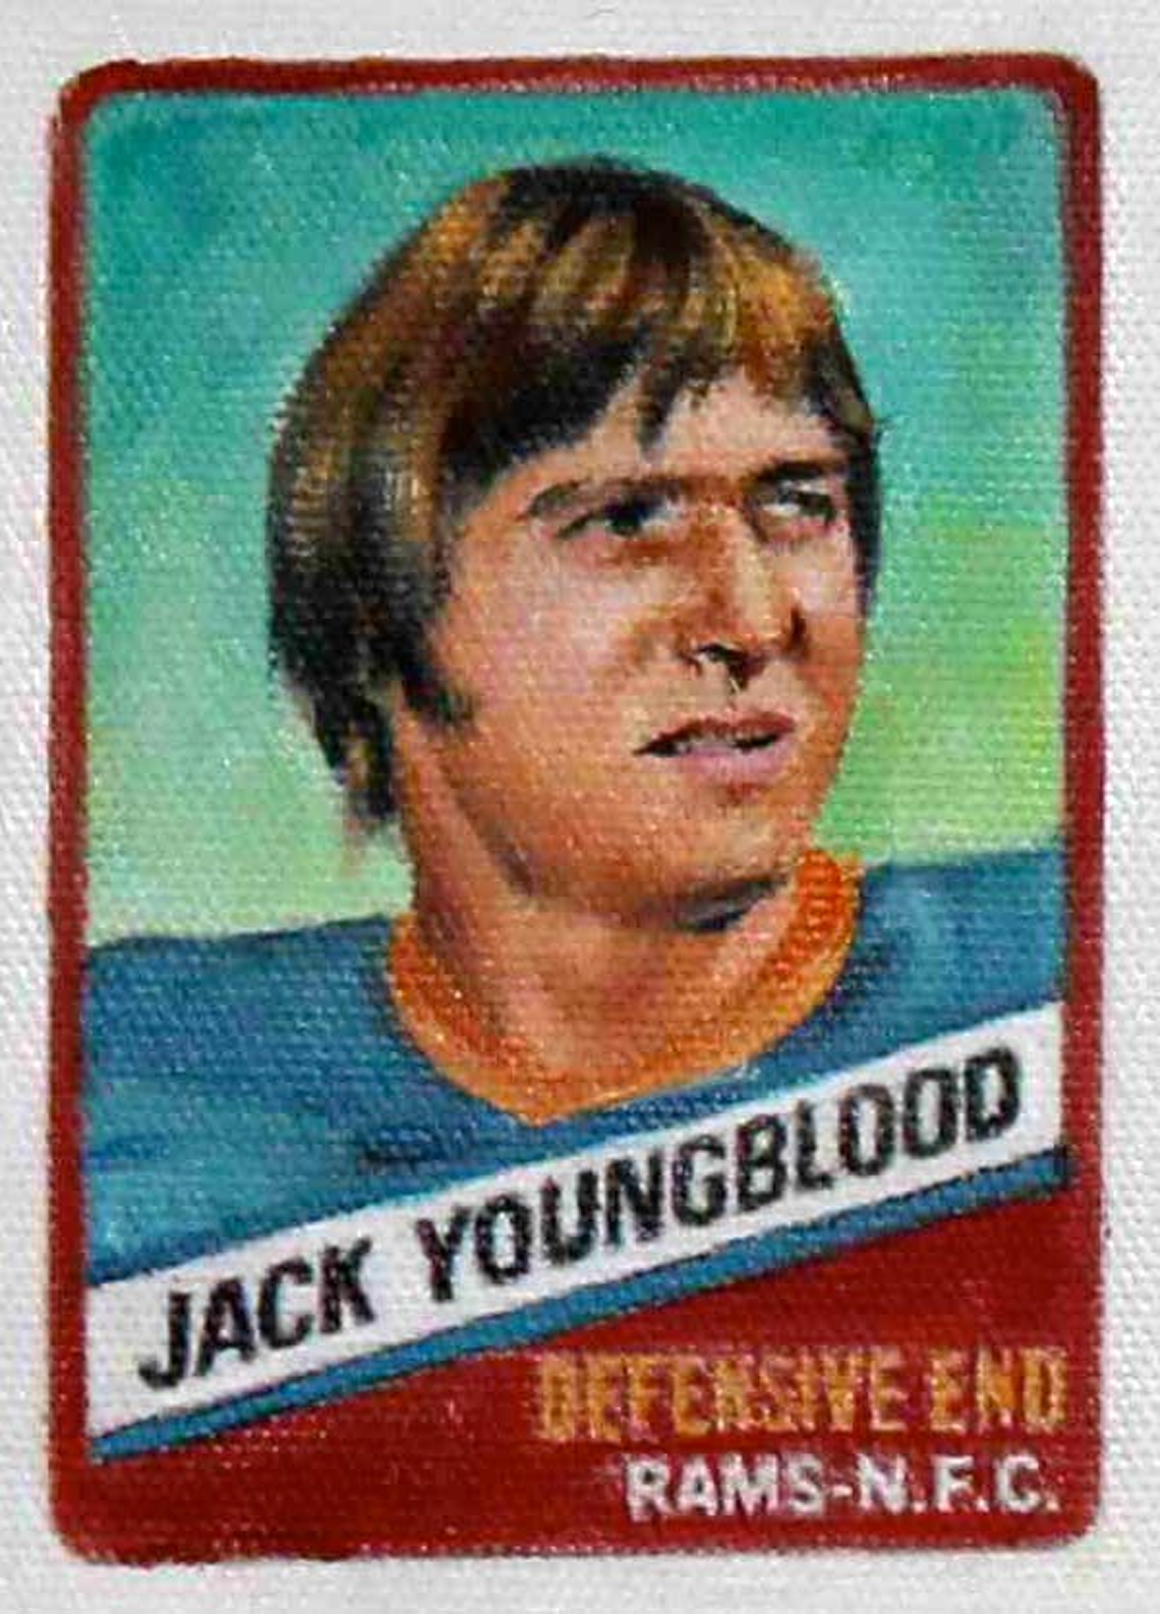 "<p><span class=""name"">Jim Thompson</span><br><em>Jack Youngblood (1977 series)</em><span class='media'>oil on canvas</span>4 x 3in<br>2012<br></p>"